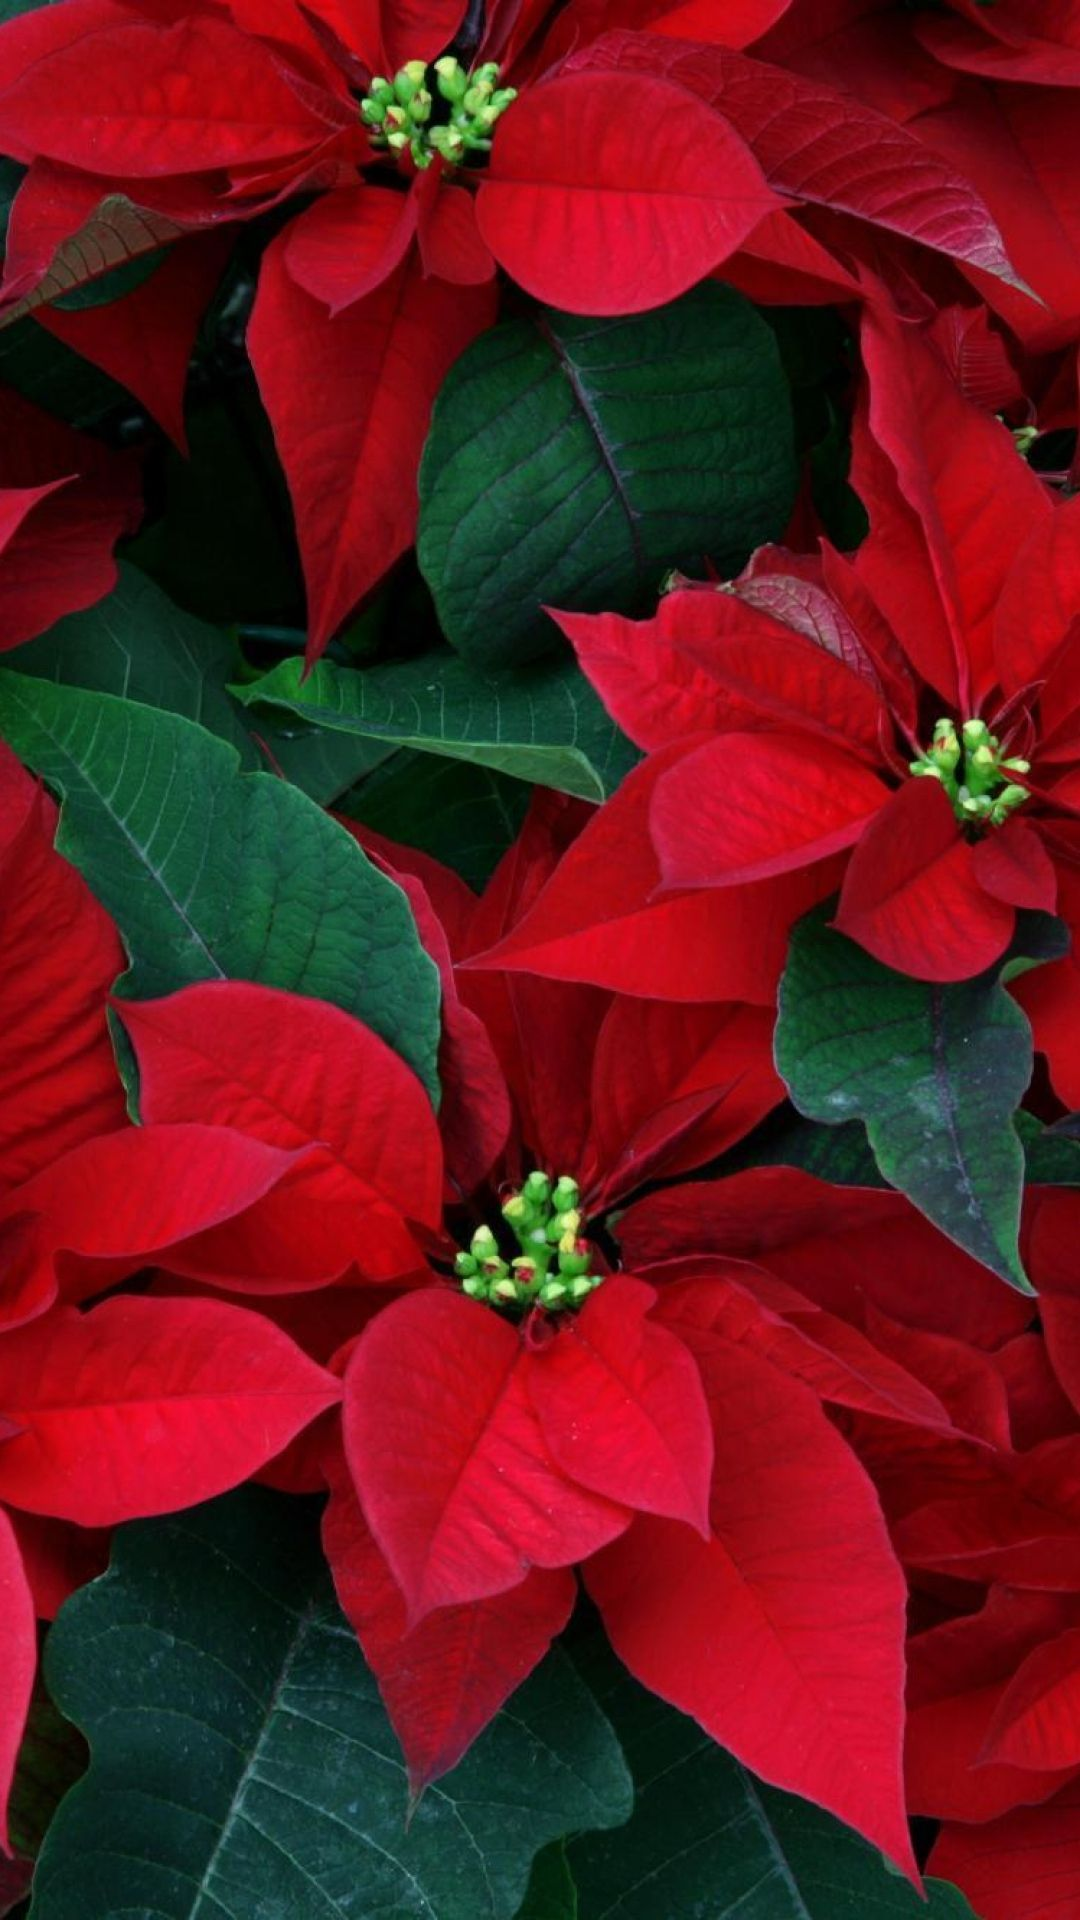 Pin By Carol Lockwood On Photography Christmas Flowers Beautiful Flowers Poinsettia Flower